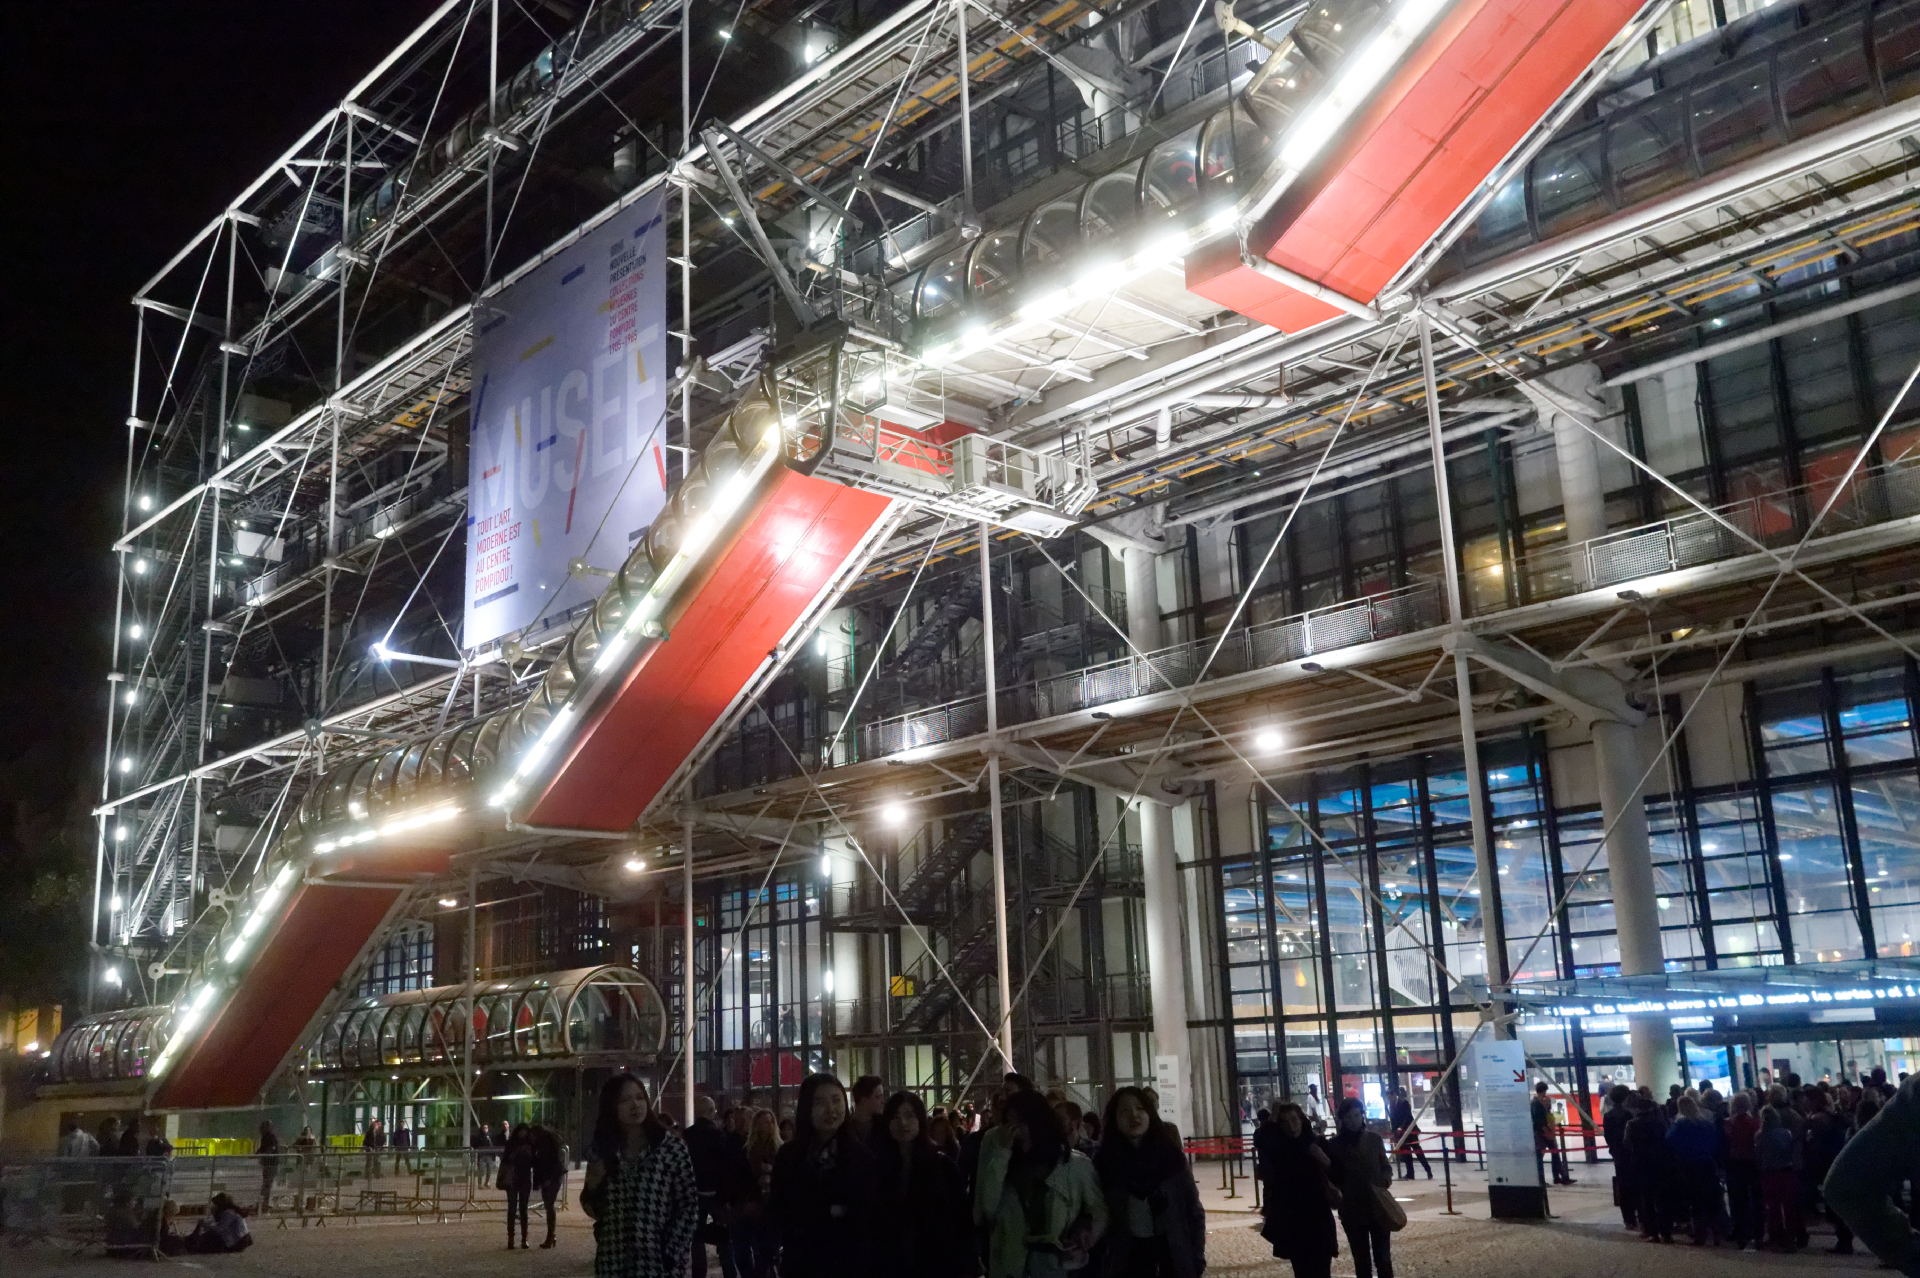 Centre Georges Pompidou in Paris France during the late museum hours